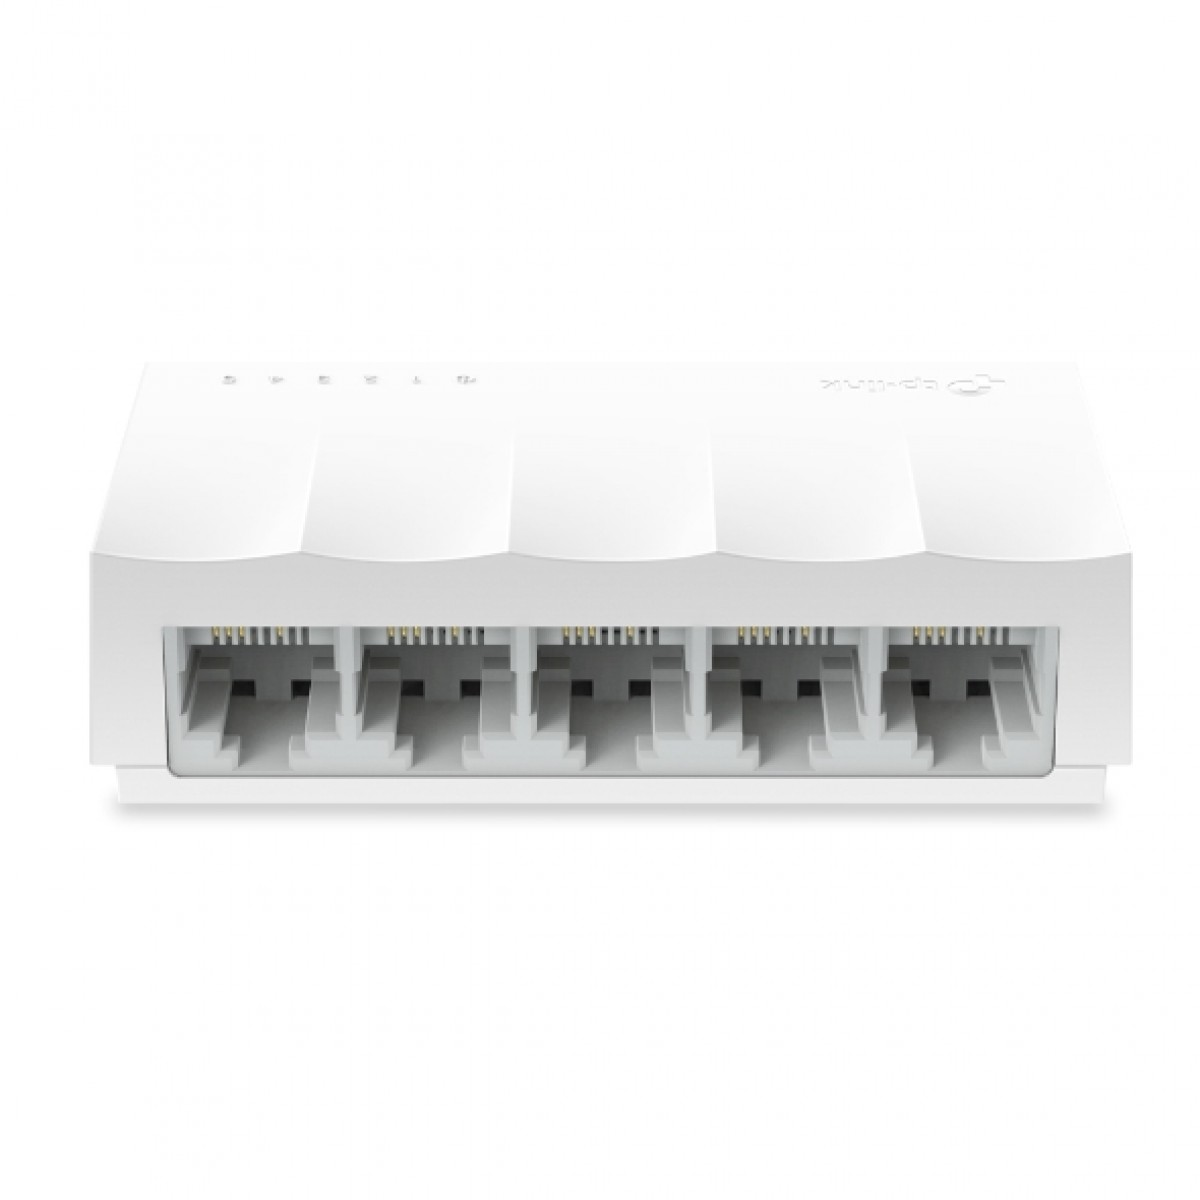 Switch TP-Link LS1005, 5 Portas 10/100 Mbps,  Fast Ethernet